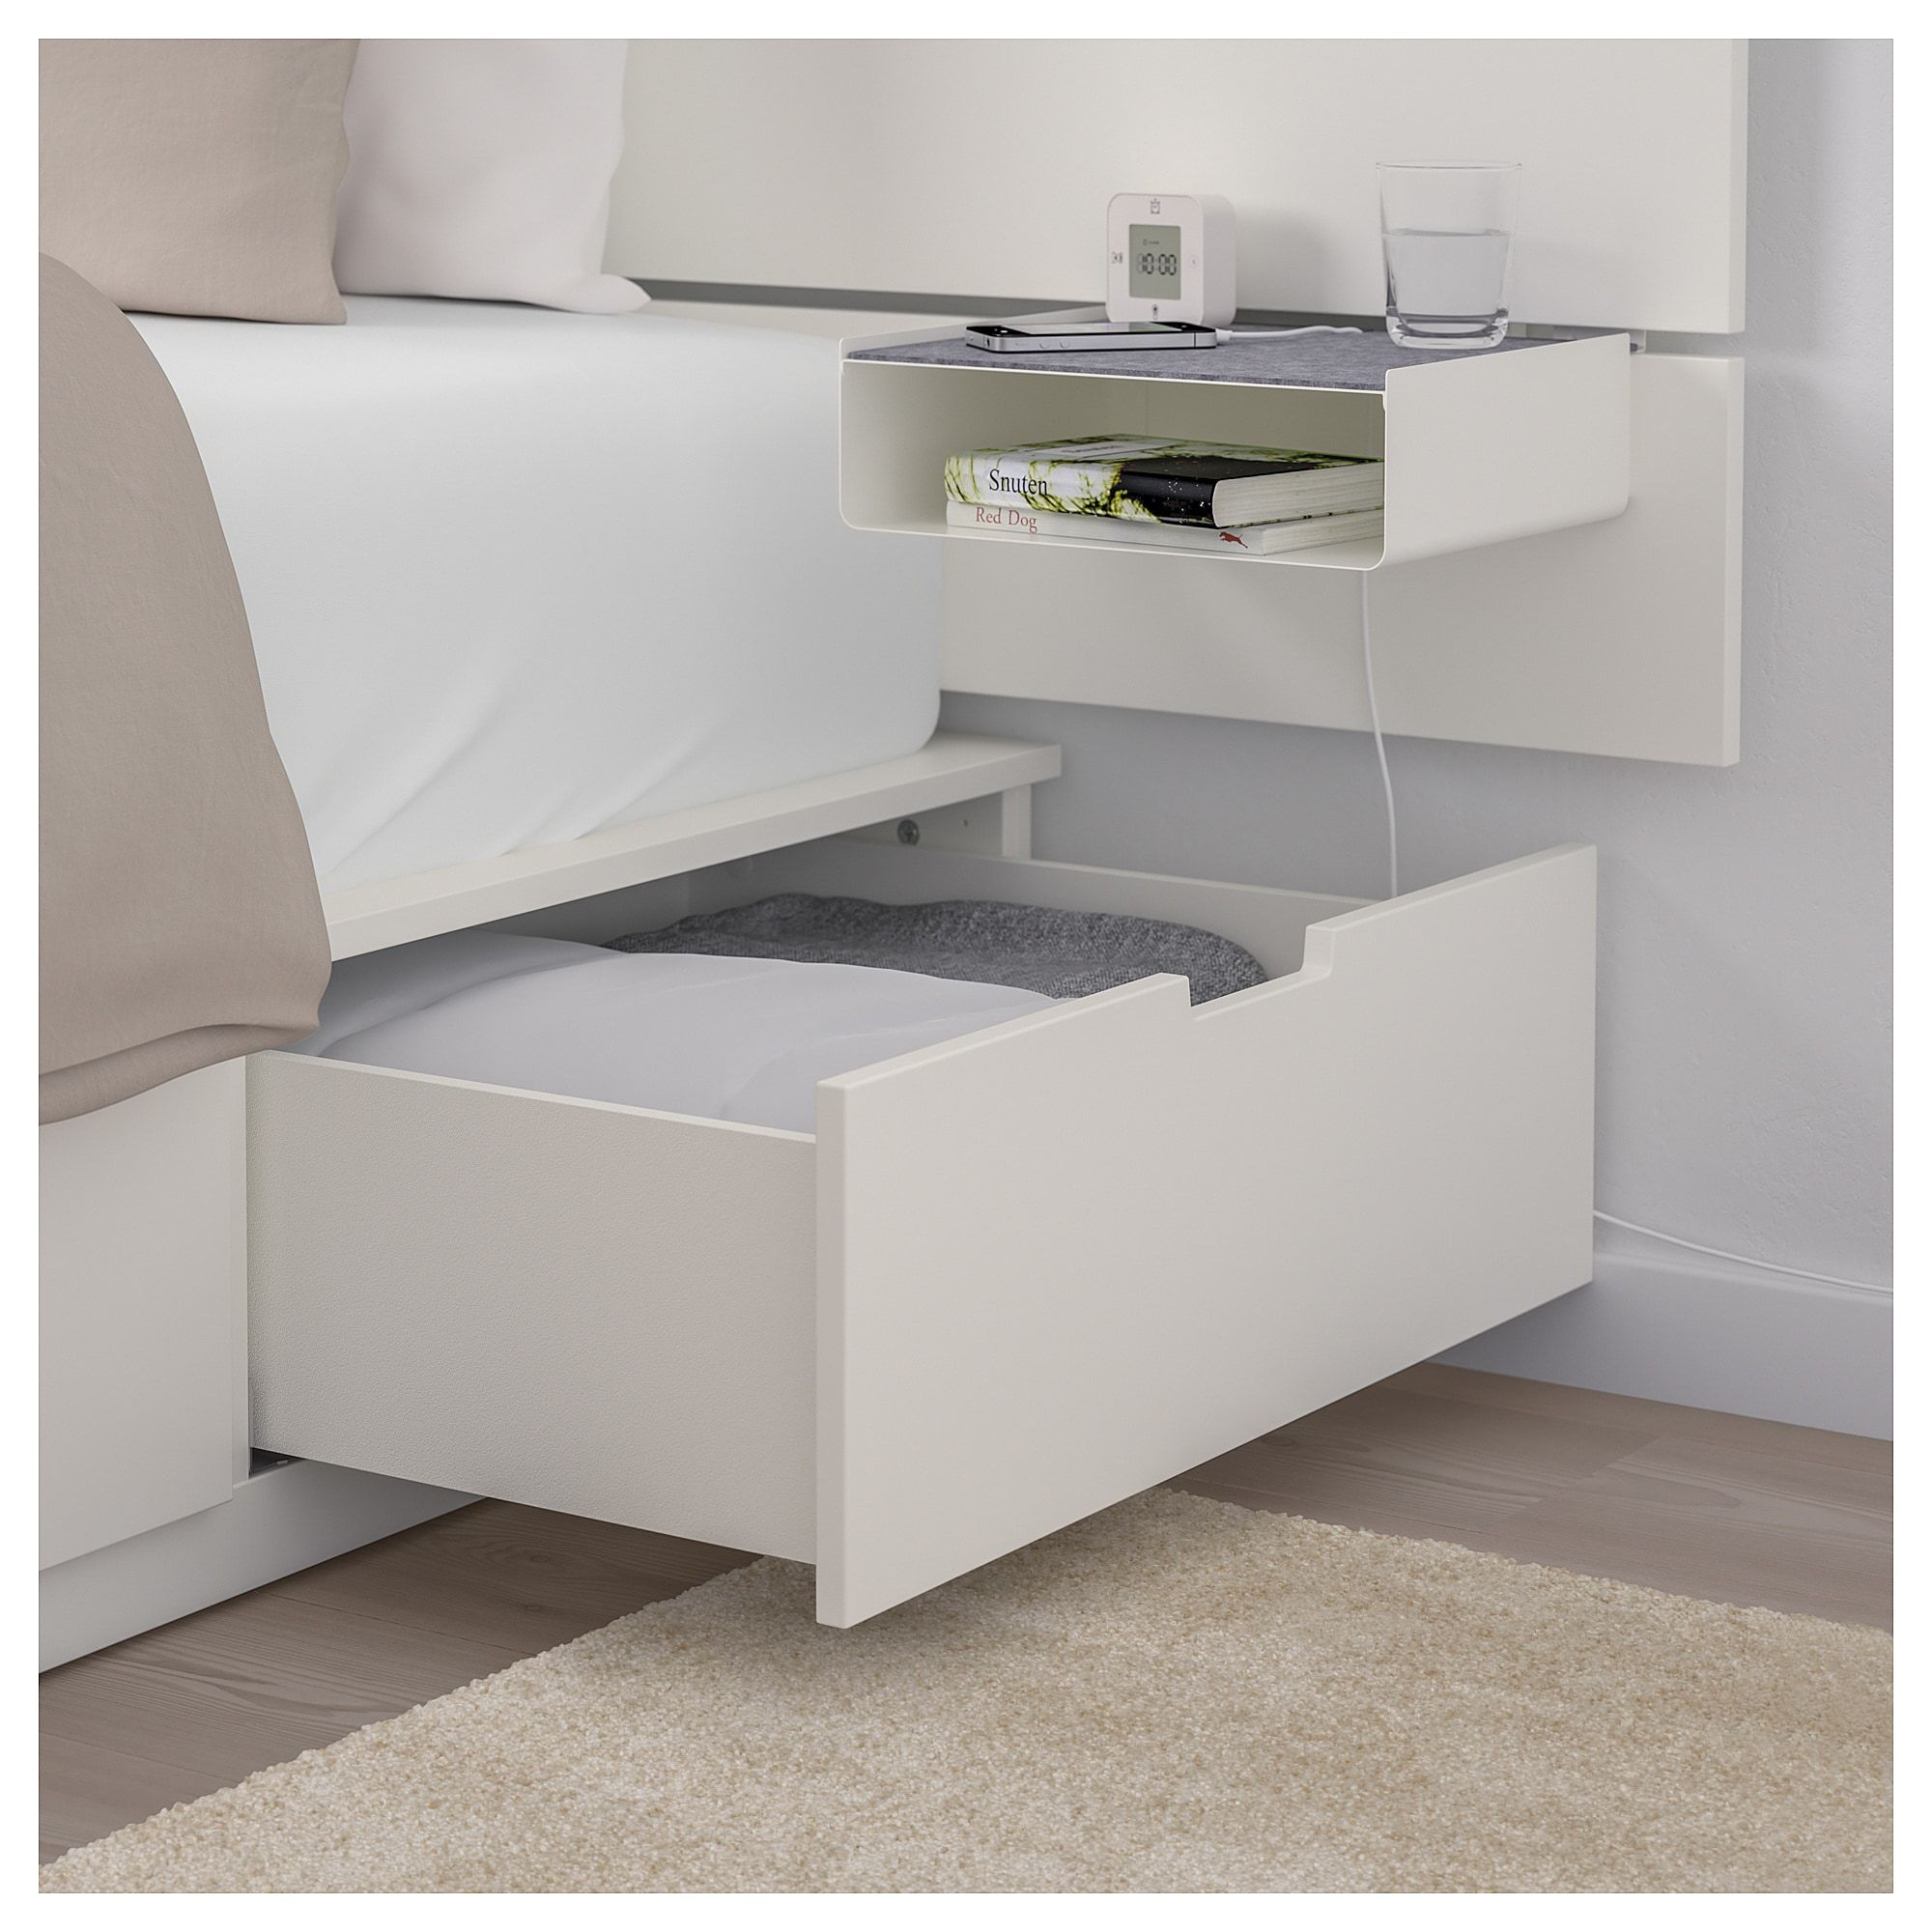 Ikea Nordli Bed With Headboard And Storage White Home